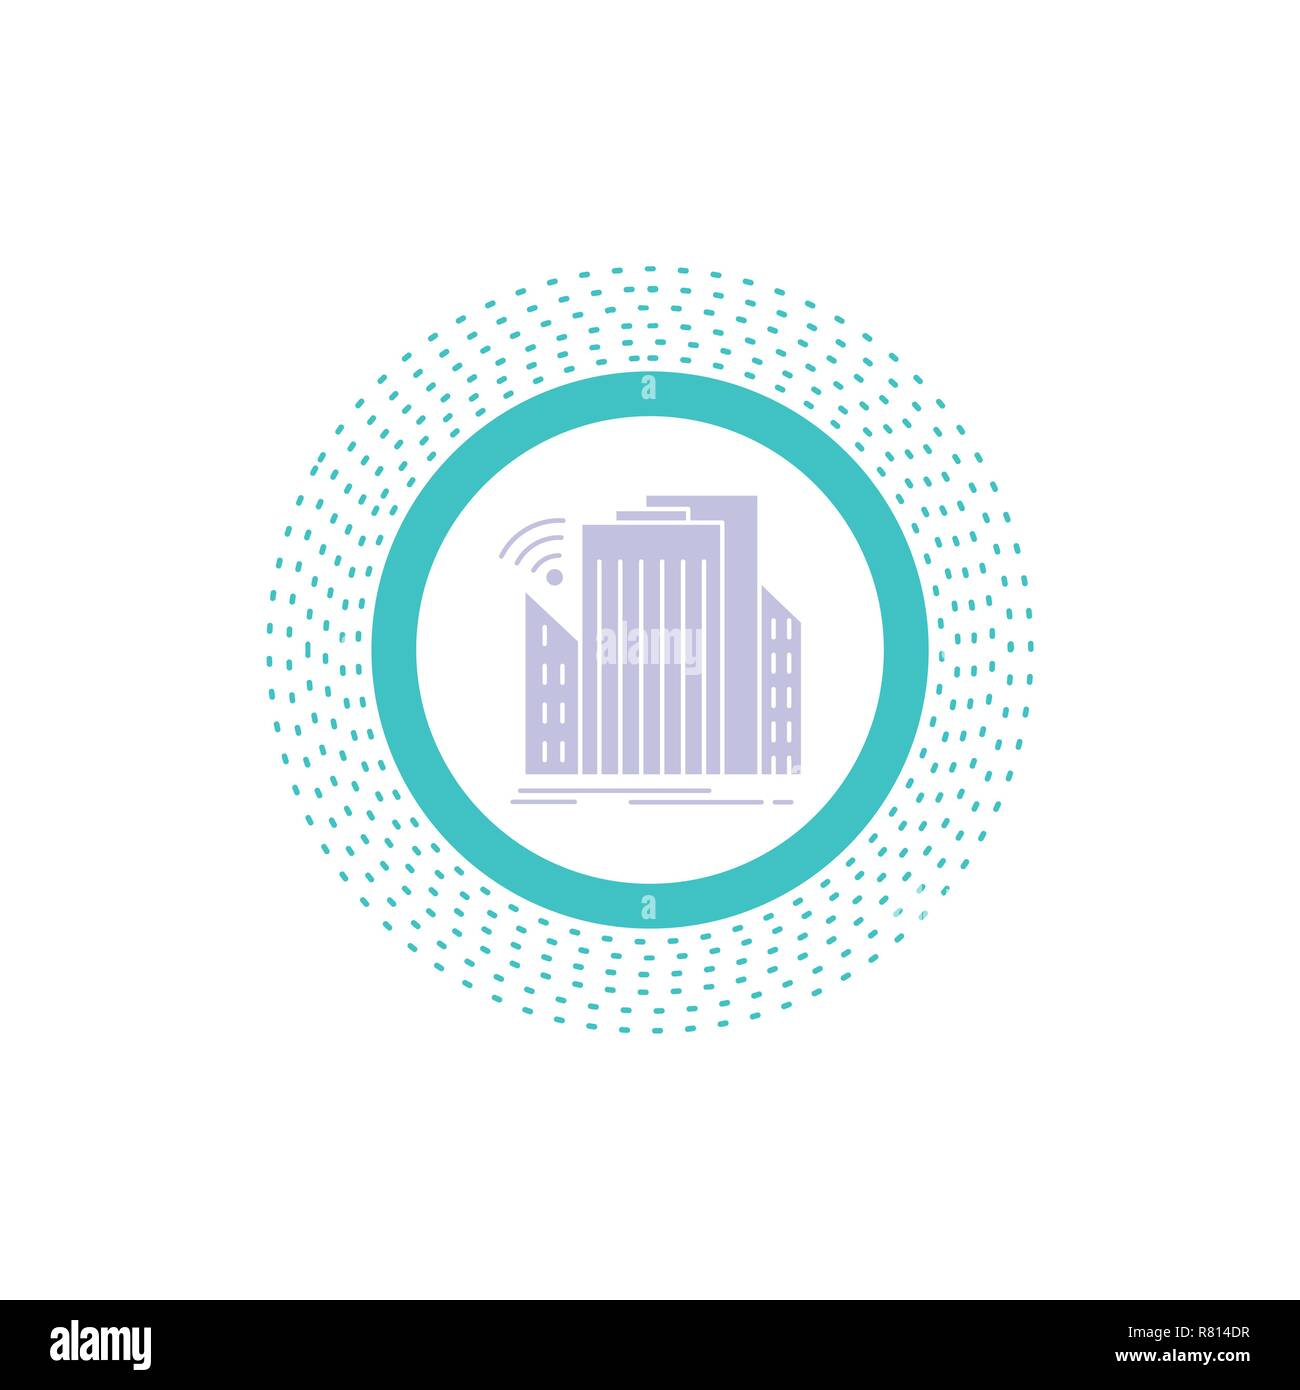 Buildings, city, sensor, smart, urban Glyph Icon. Vector isolated illustration - Stock Vector